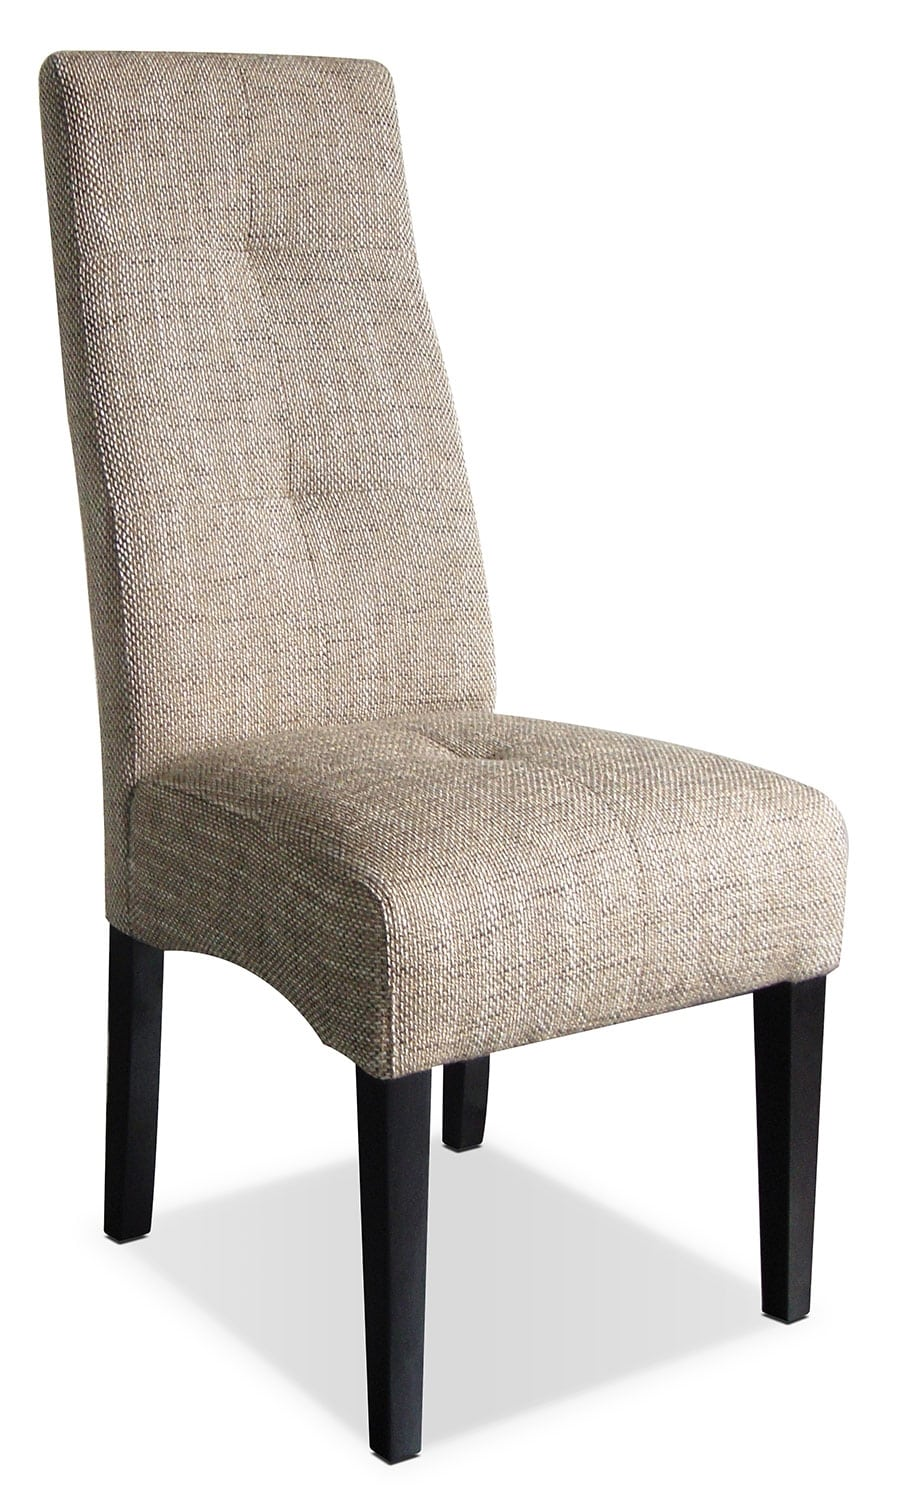 Beige Linen Chair